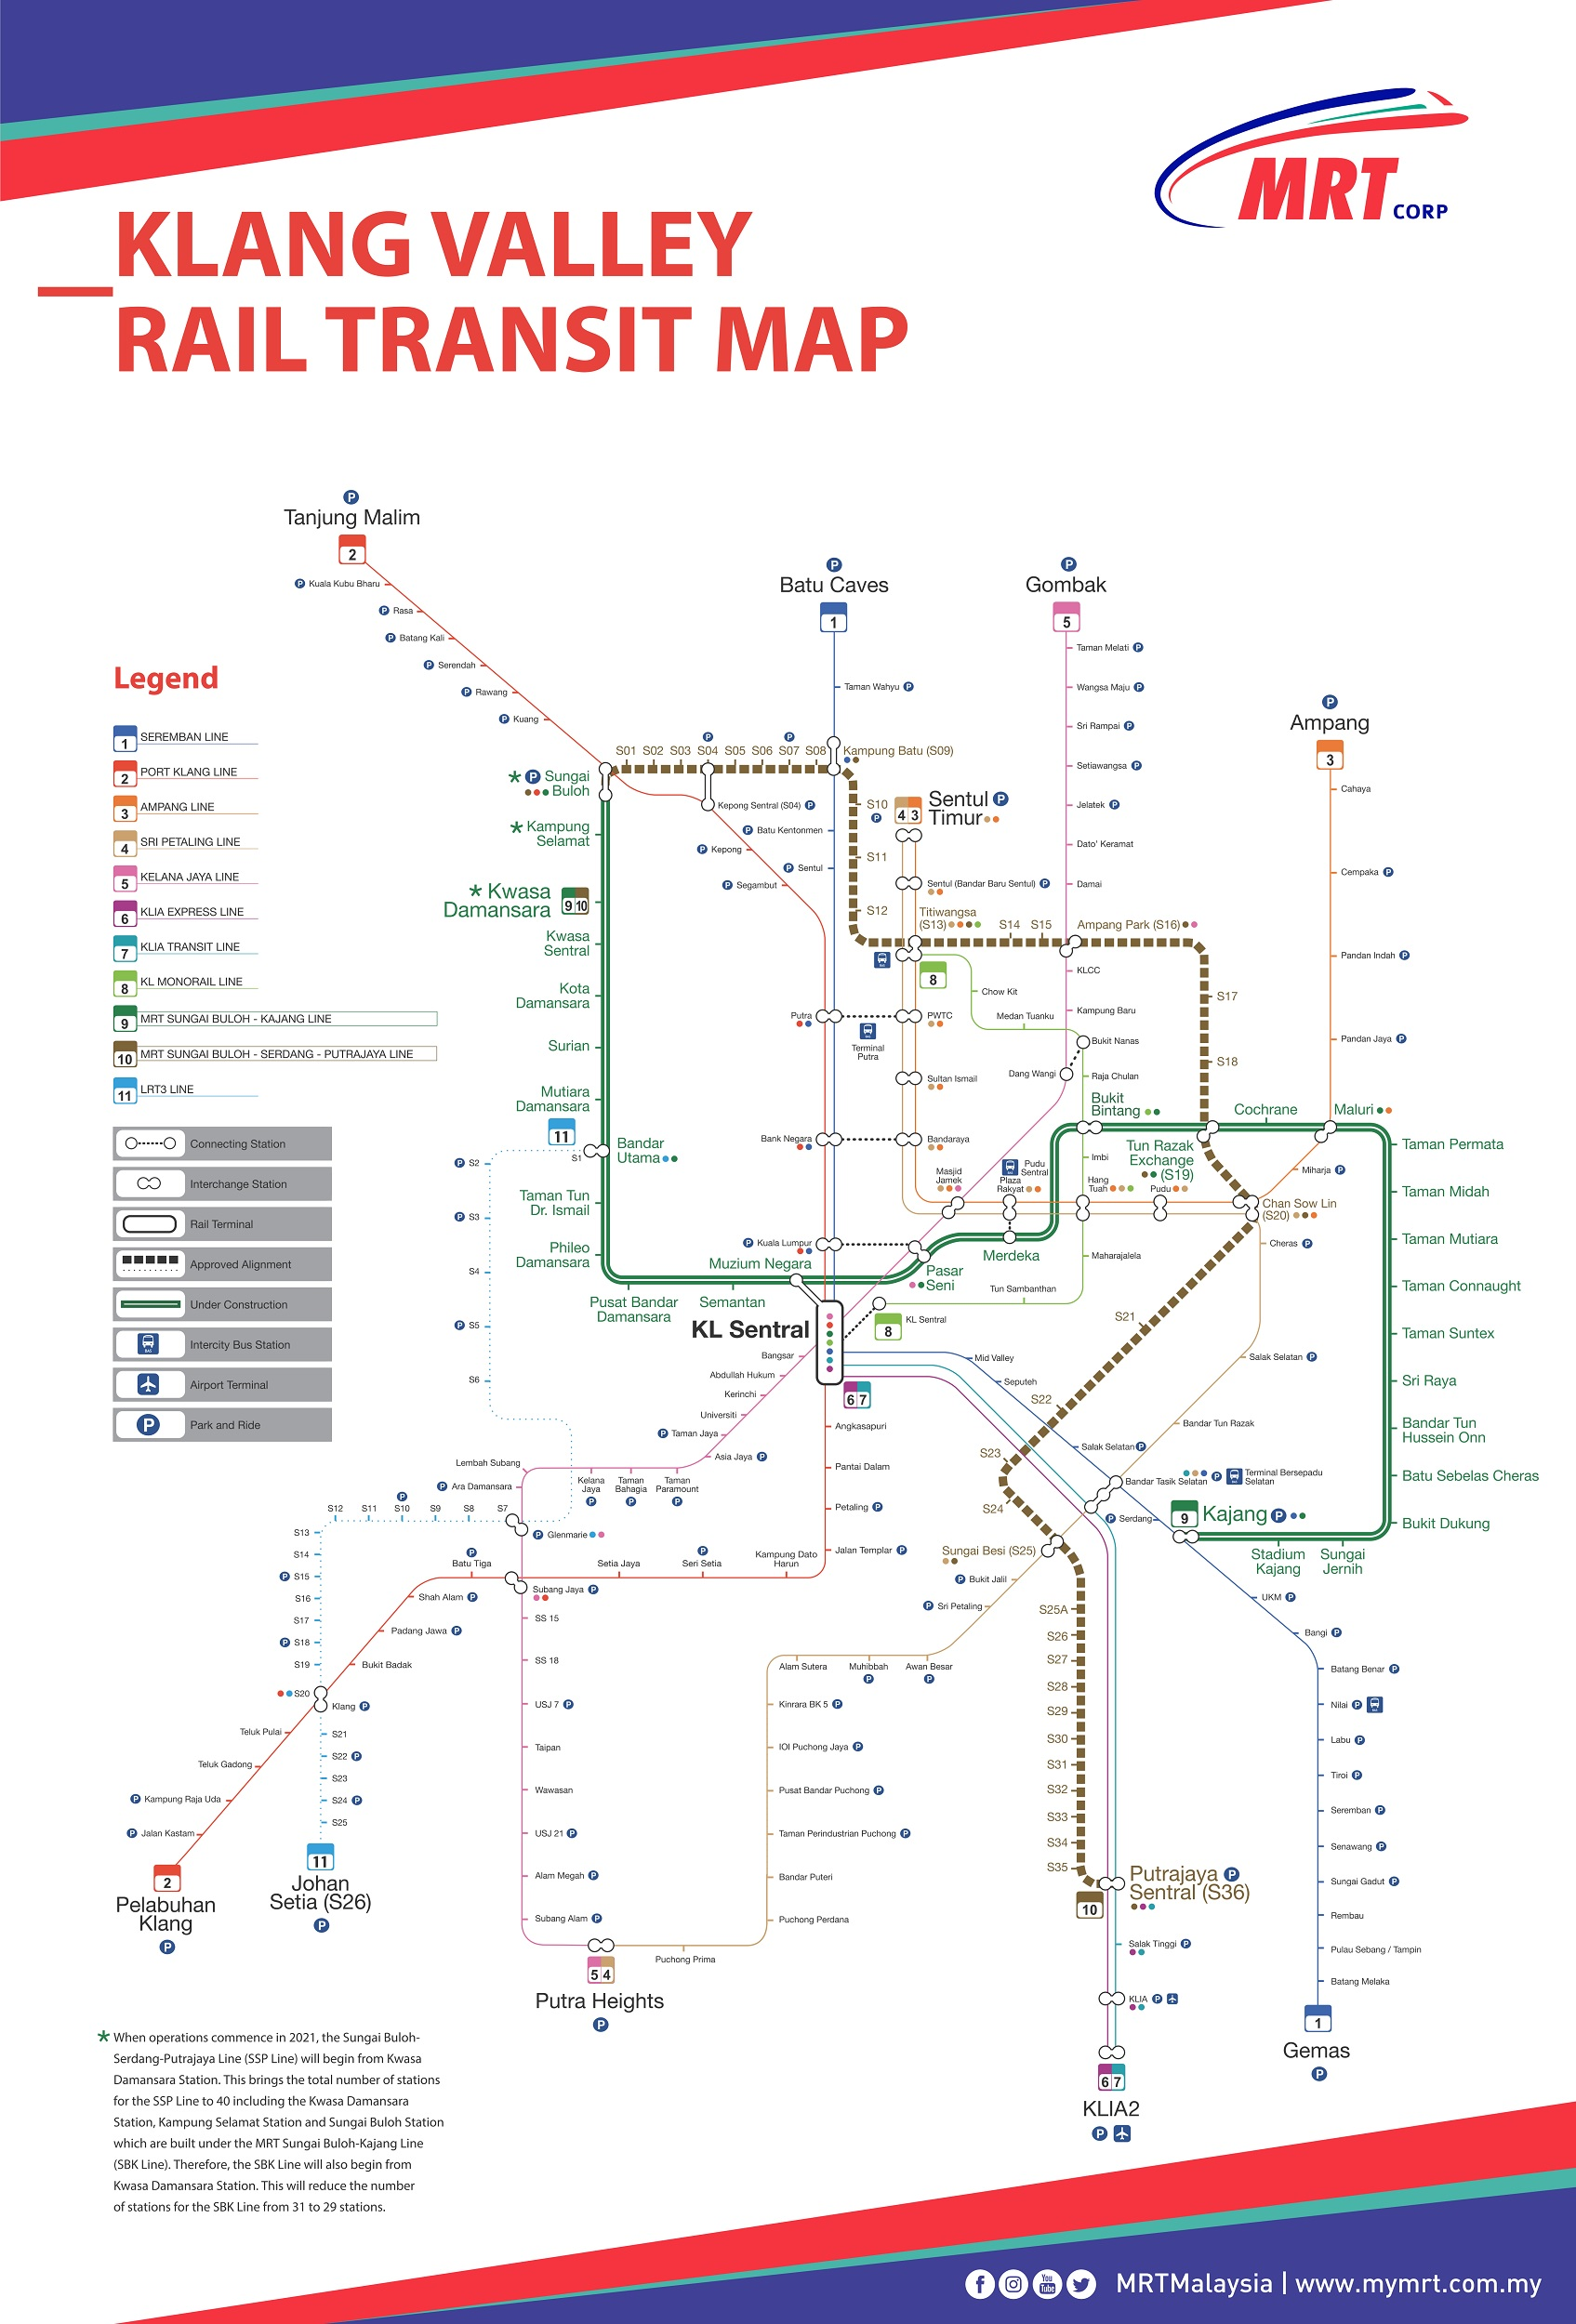 https://pianotohikouki.com/wp-content/uploads/2017/06/kualalumpur-mrt-map.jpg